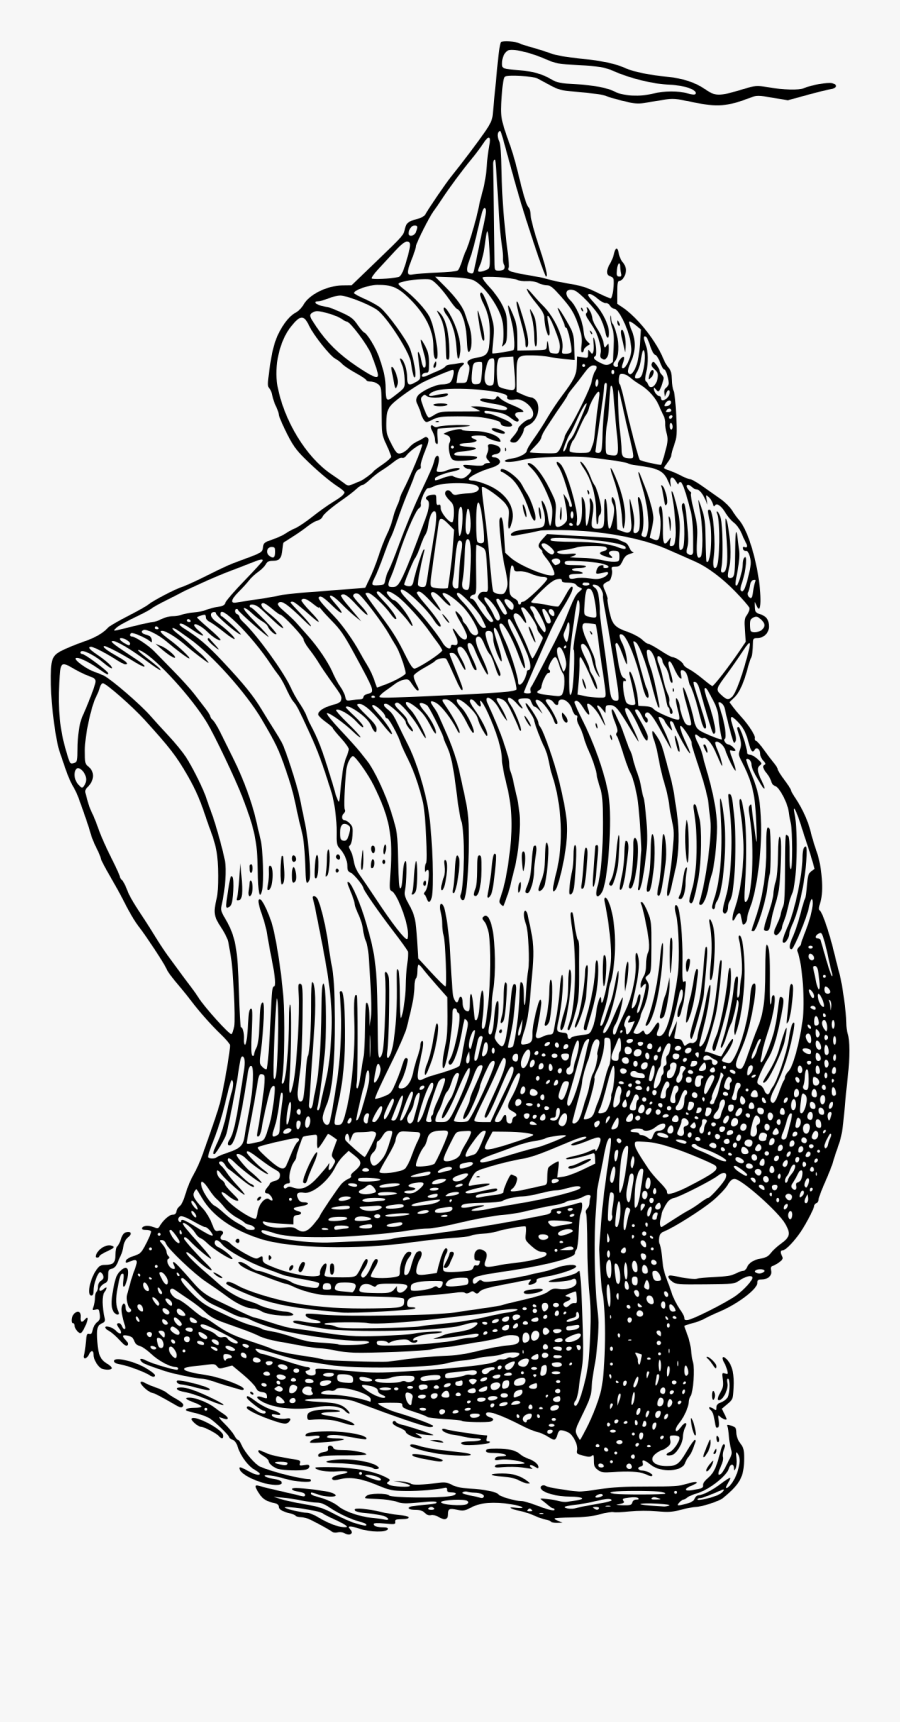 Clip Black And White Mayflower Drawing Kid - Clipart Sailing Ship, Transparent Clipart